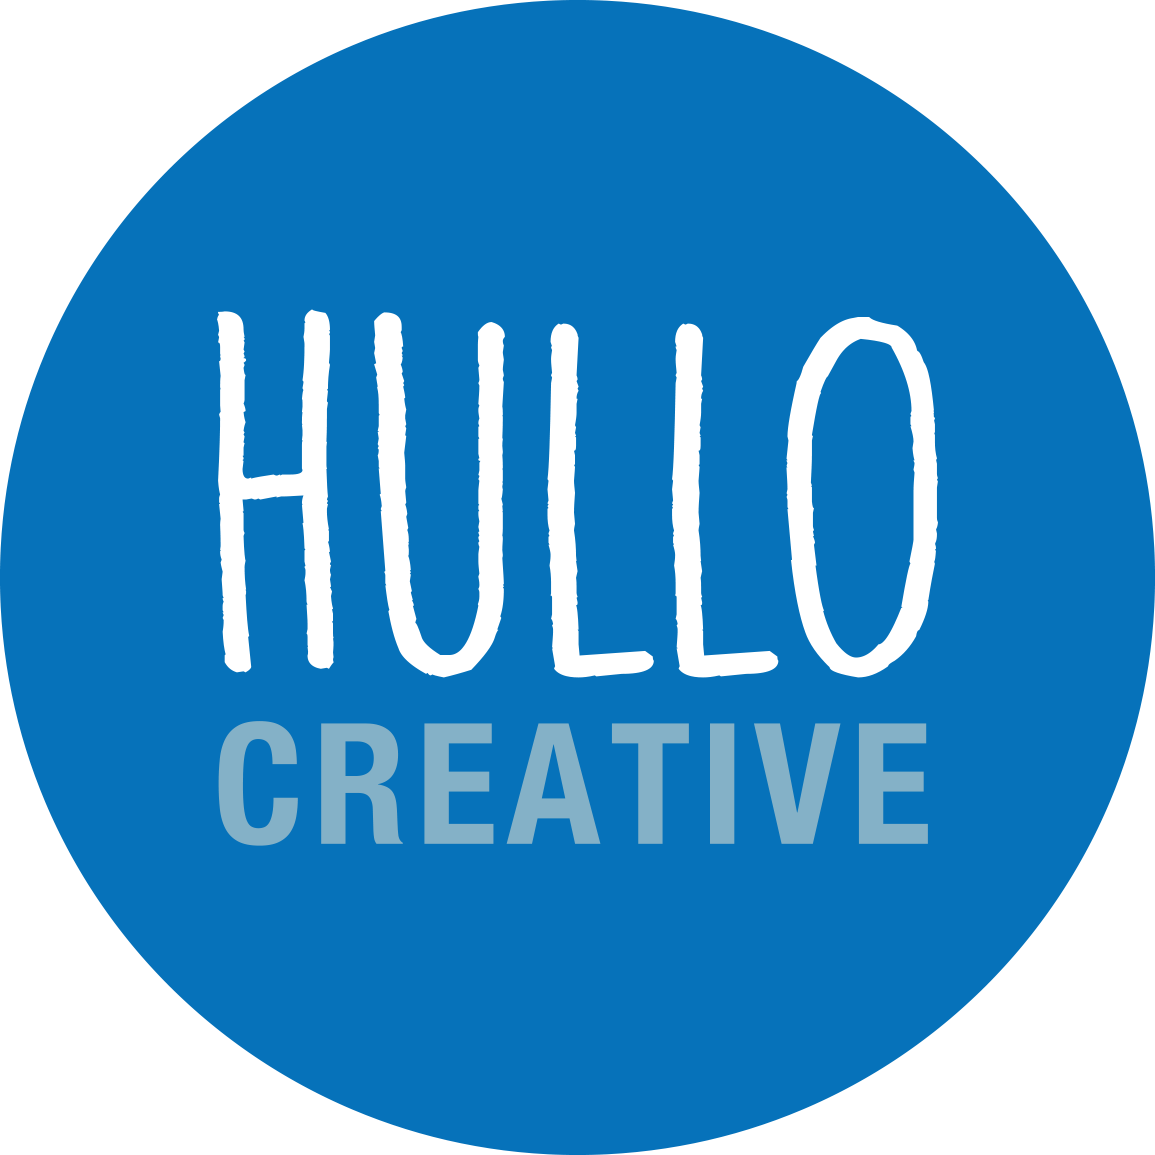 Hullo Creative | Design Collaborative in Bristol